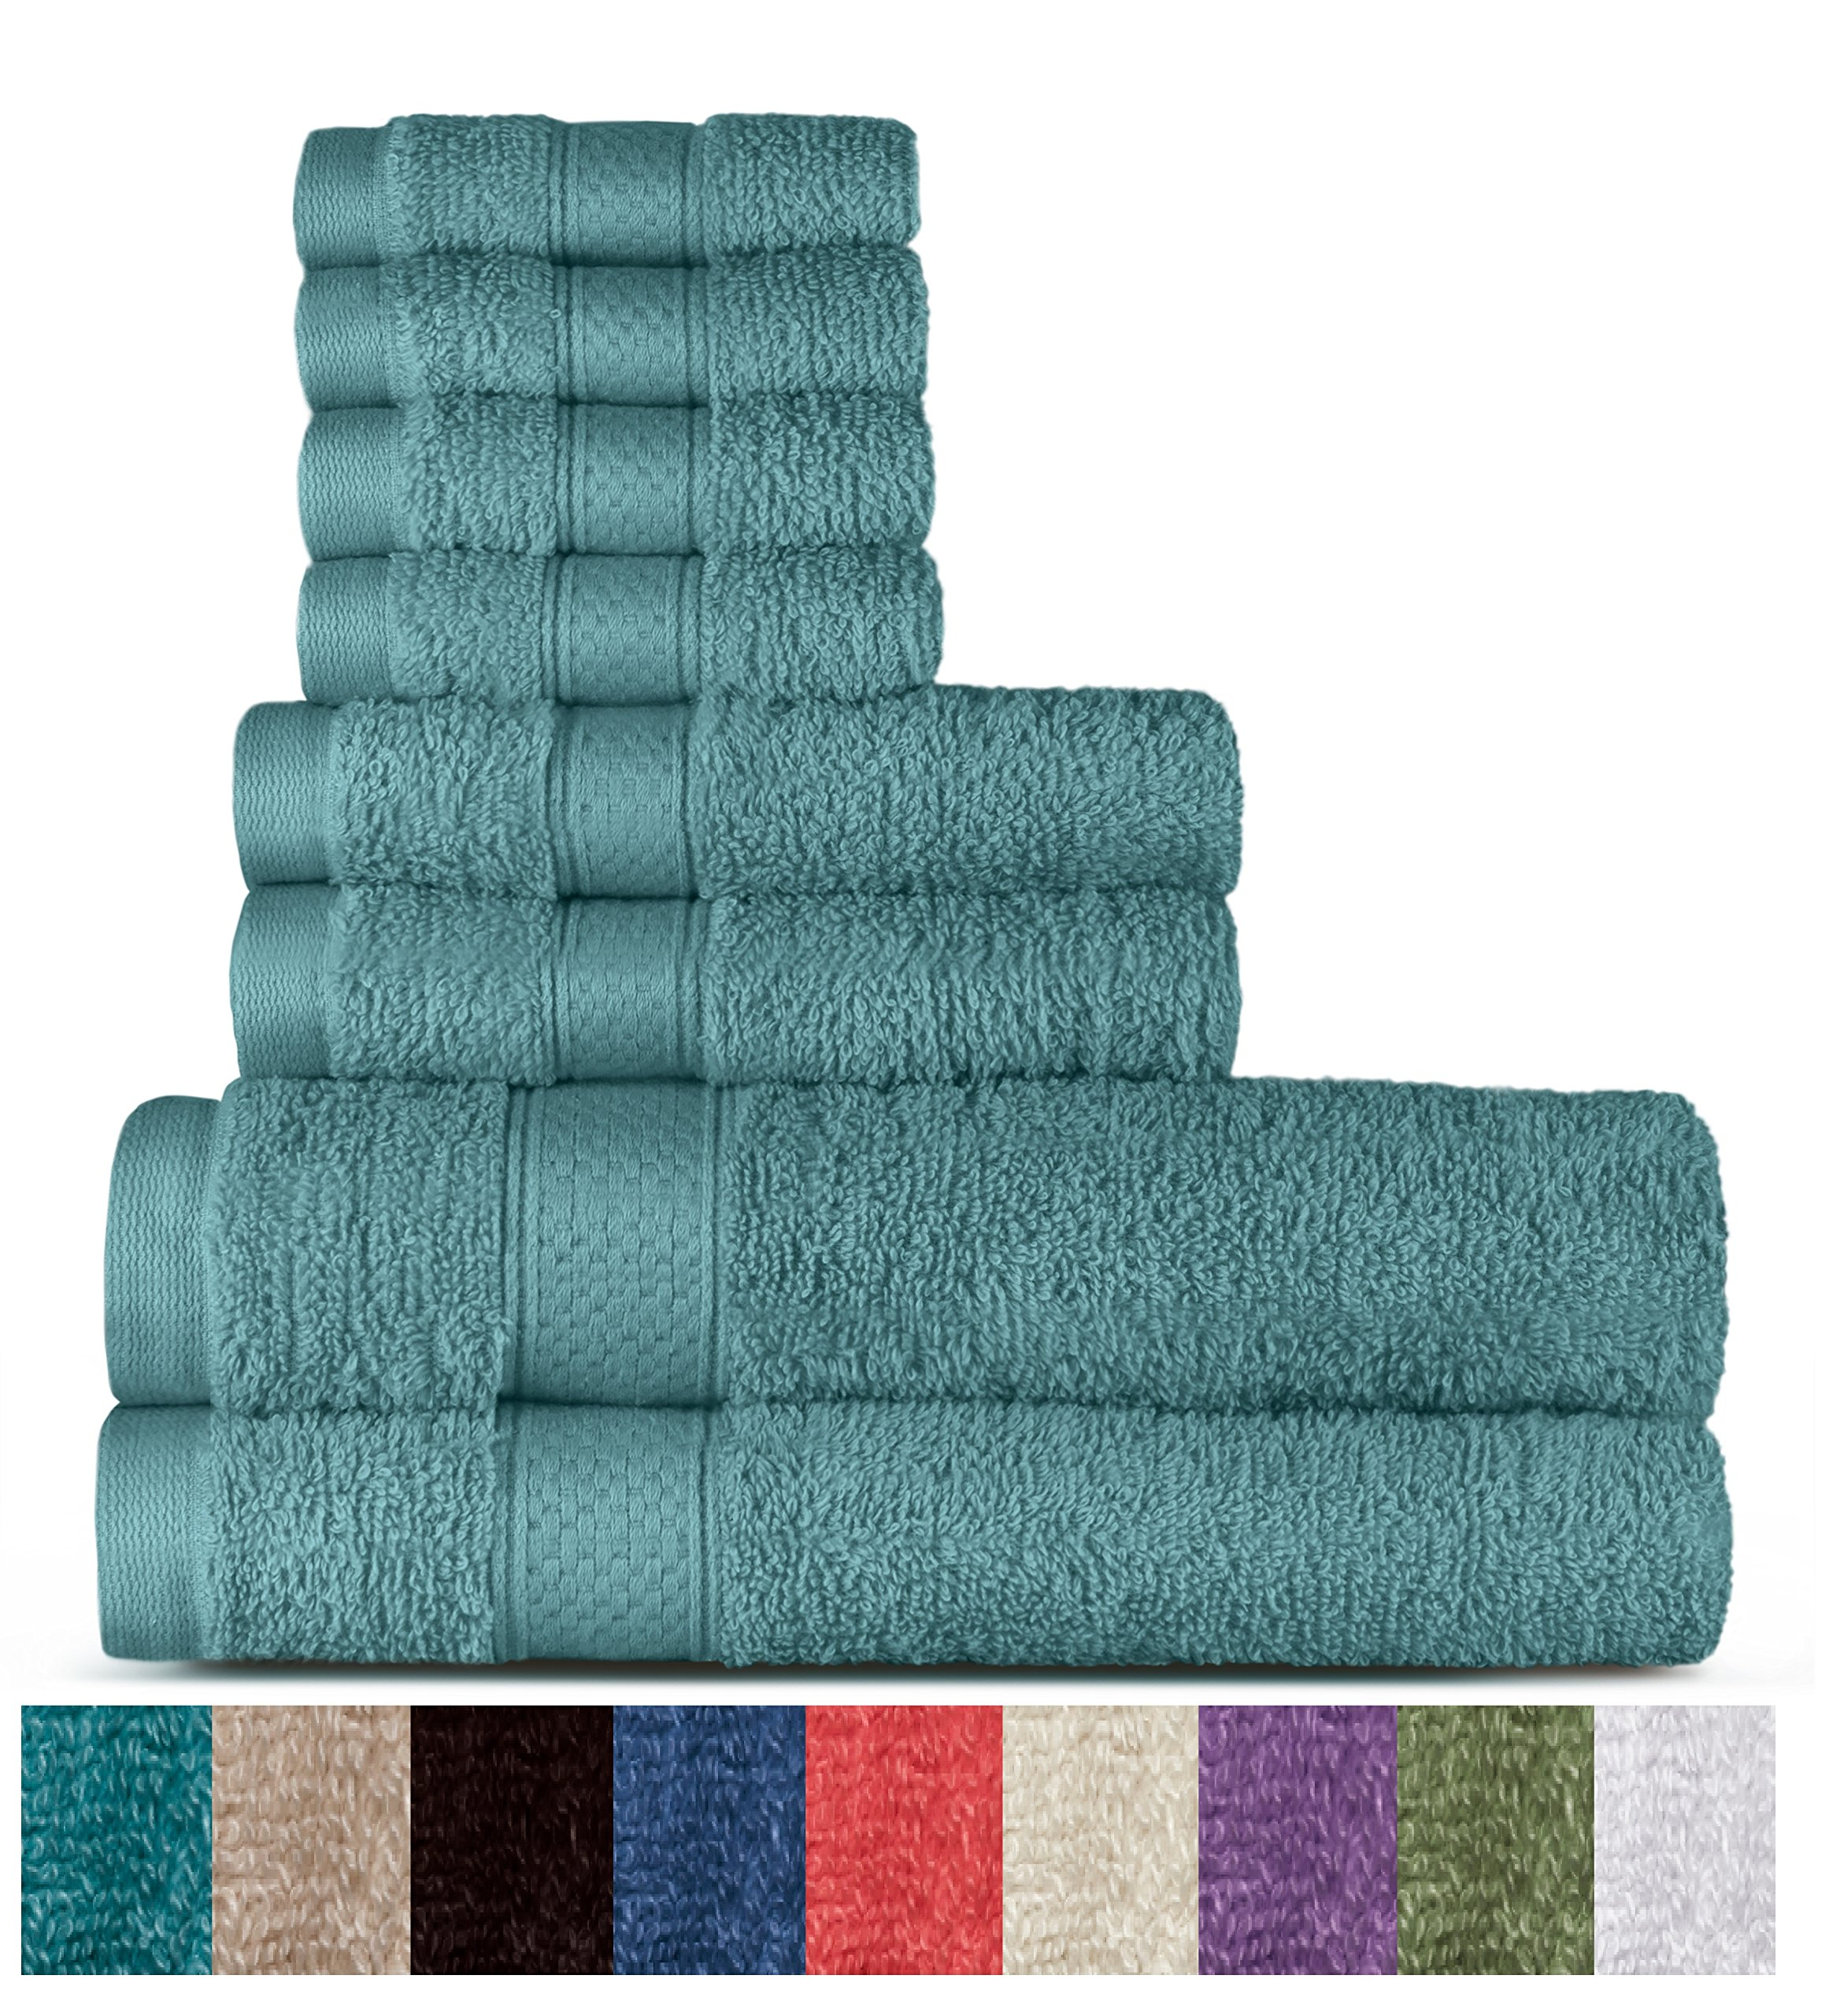 100% Cotton 8 Piece Towel Set (Duck Egg); 2 Bath Towels, 2 Hand Towels and 4 Washcloths, Machine Washable, Super Soft by WELHOME